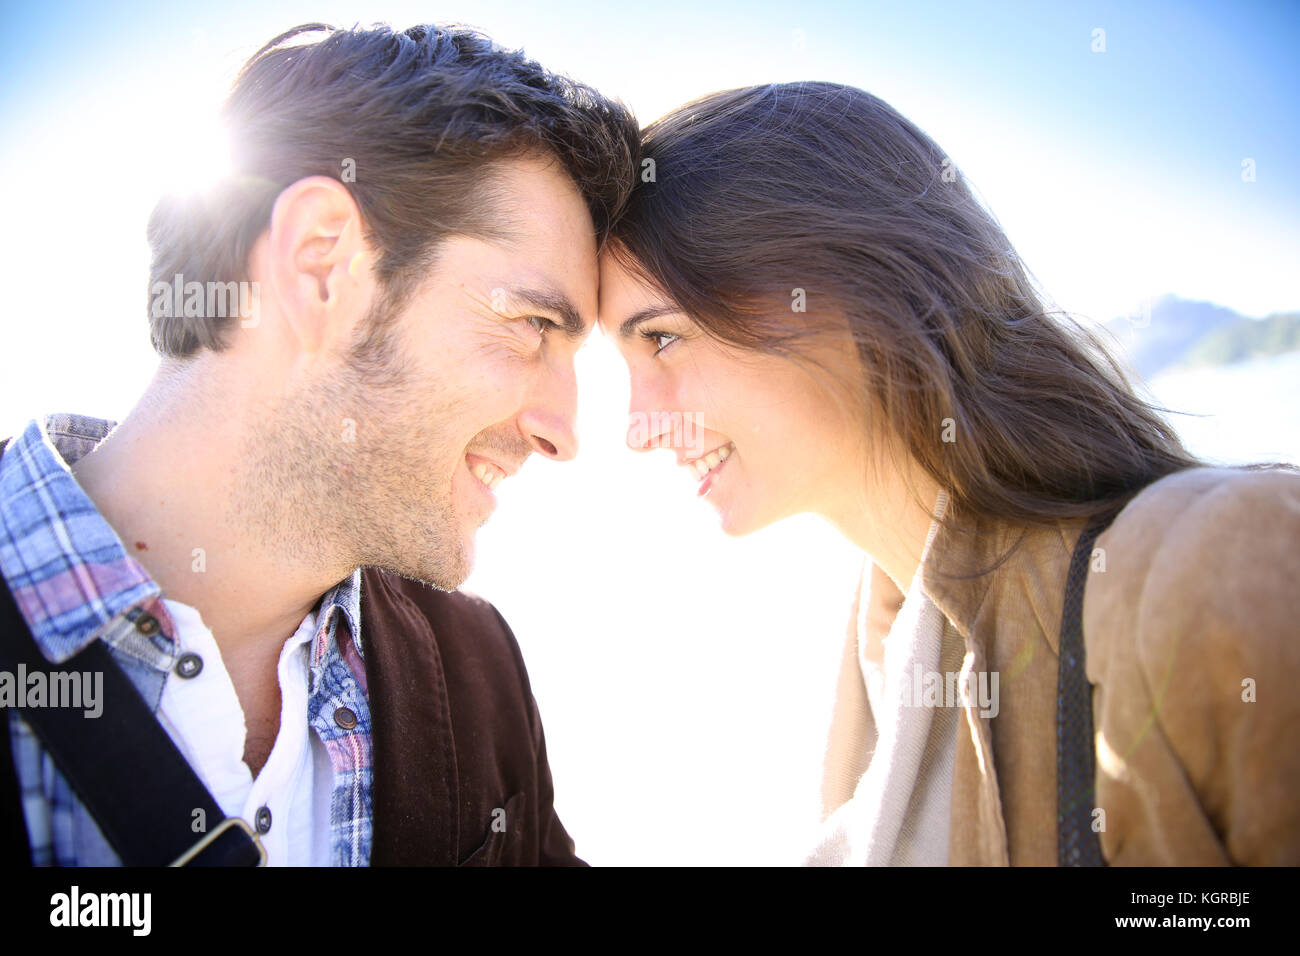 Sweet couple looking at each other's eyes - Stock Image